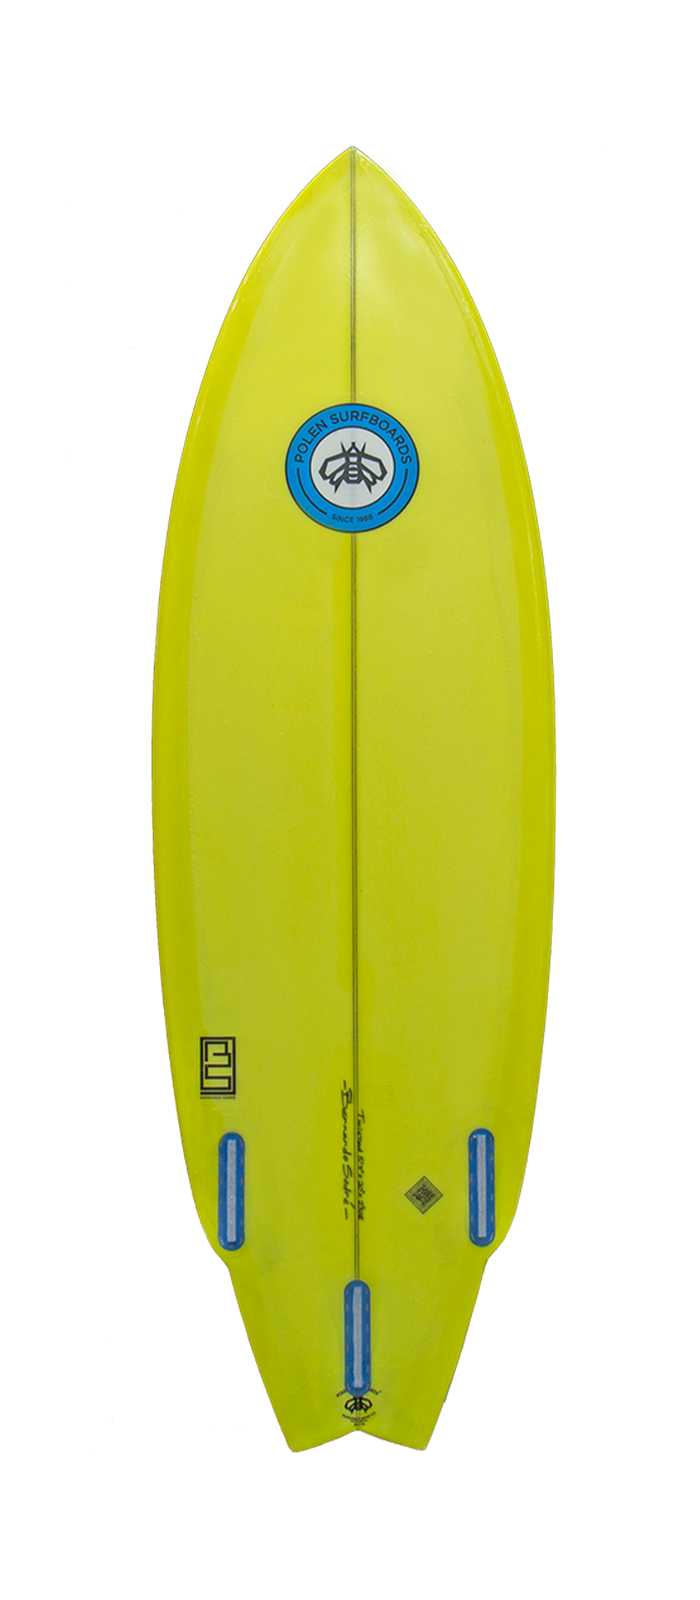 TWISTED surfboard model bottom